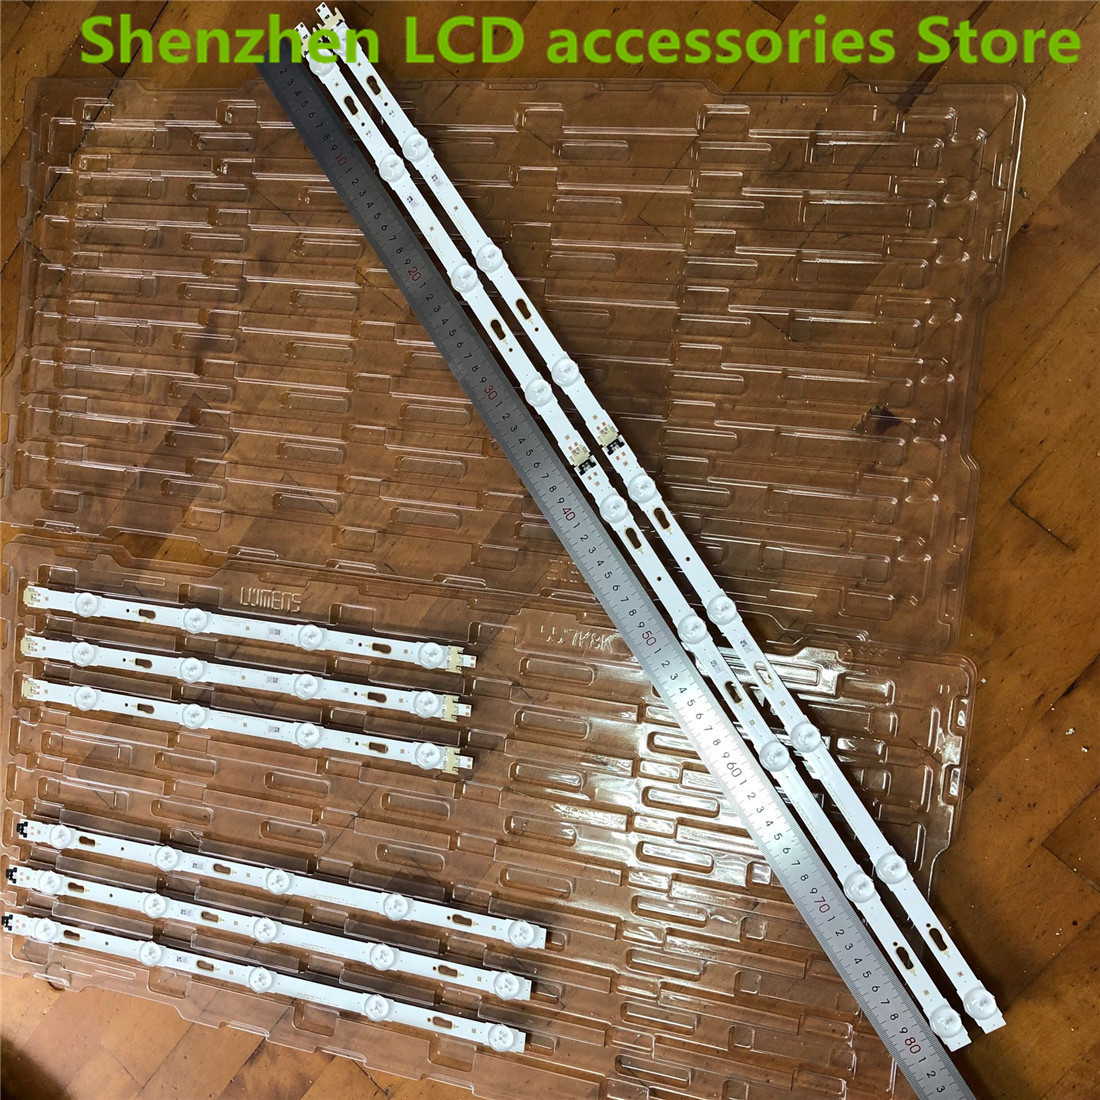 10 PCS LED Backlight  For Samsung UE40JU6000 V5DU-400DCA-R1 V5DU-400DCB-R1 BN96-34791A 34792A S_5u75_40_FL_L04 R05  100%NEW